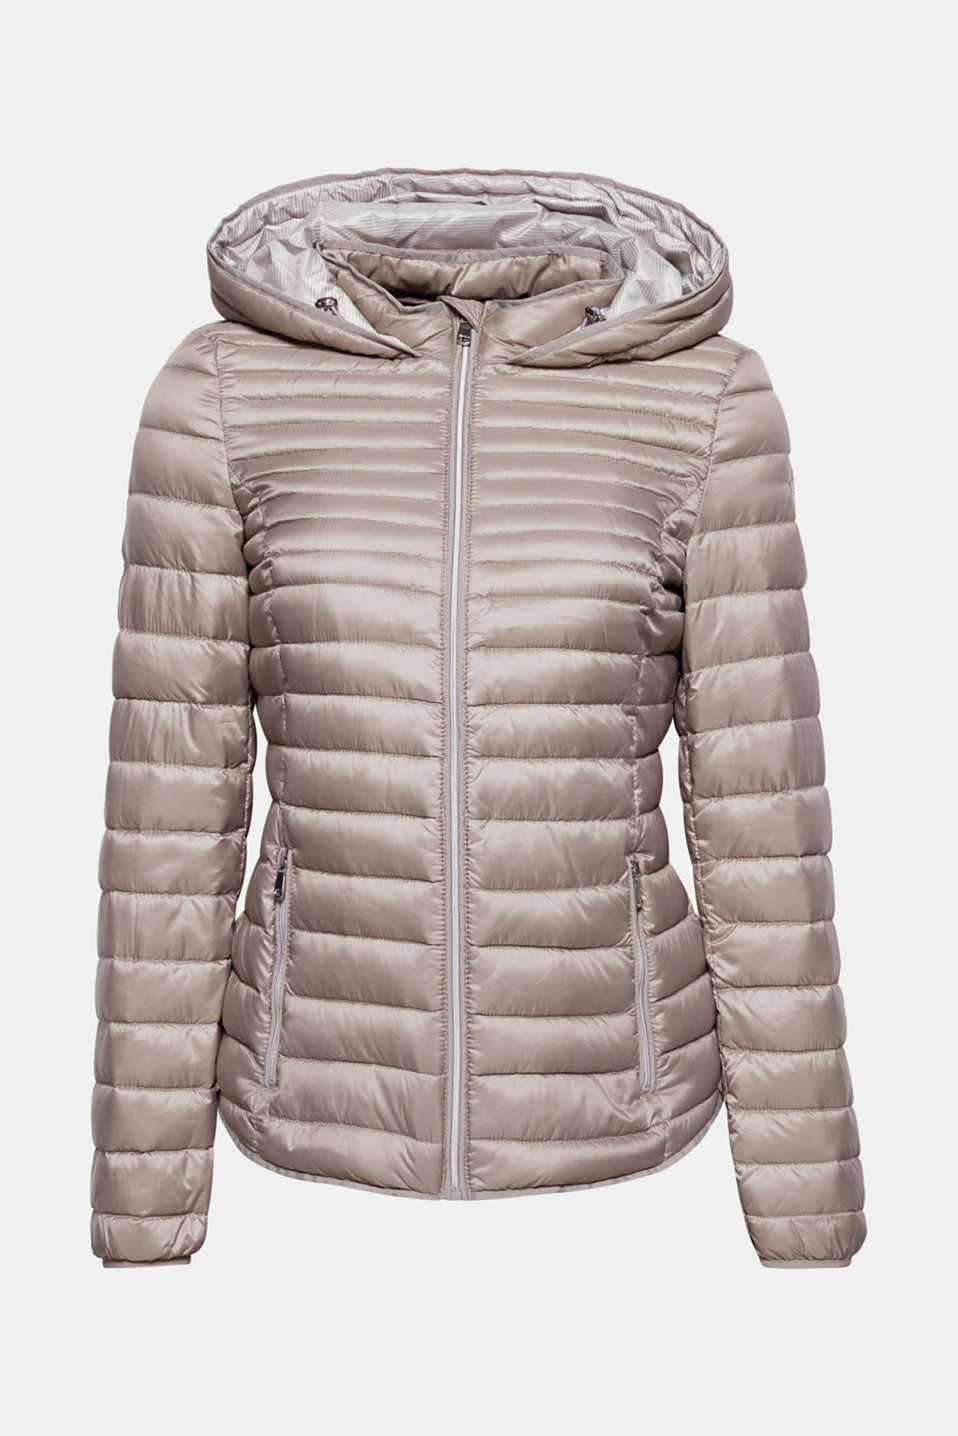 Your essential companion for between the seasons: this light hooded down jacket with RDS-certified down + feather filling!